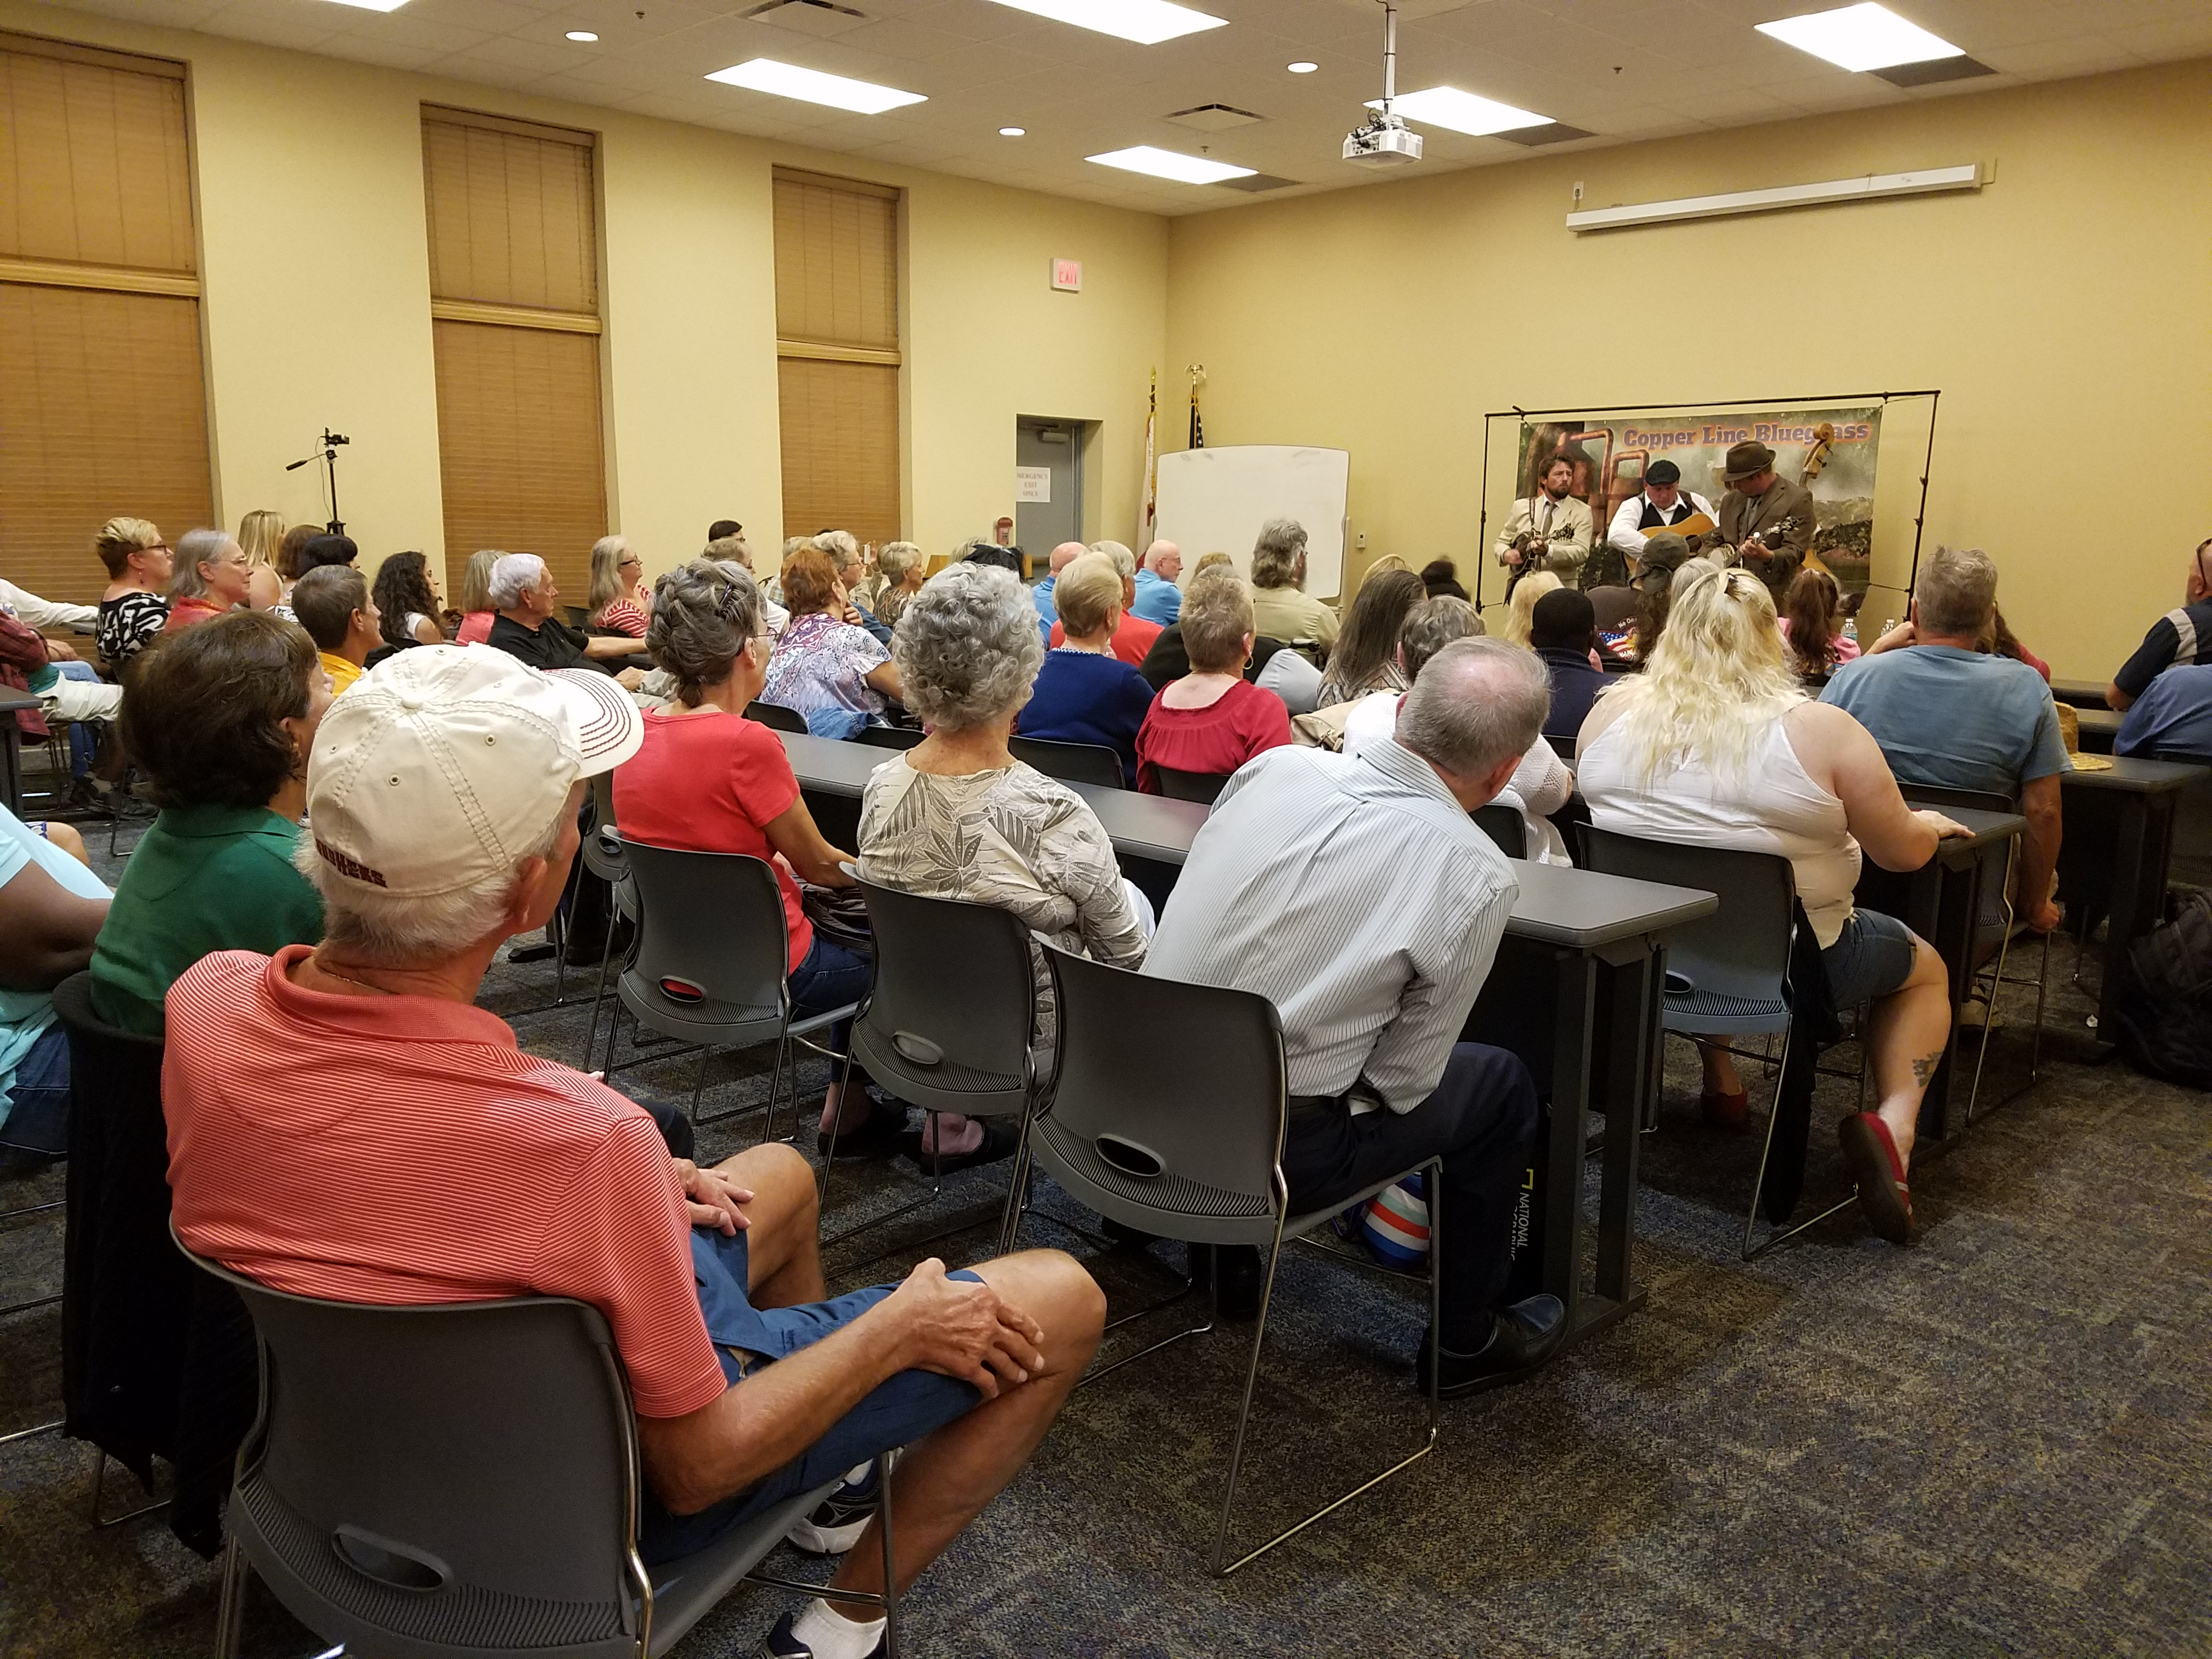 Copper Line Performed at the Library